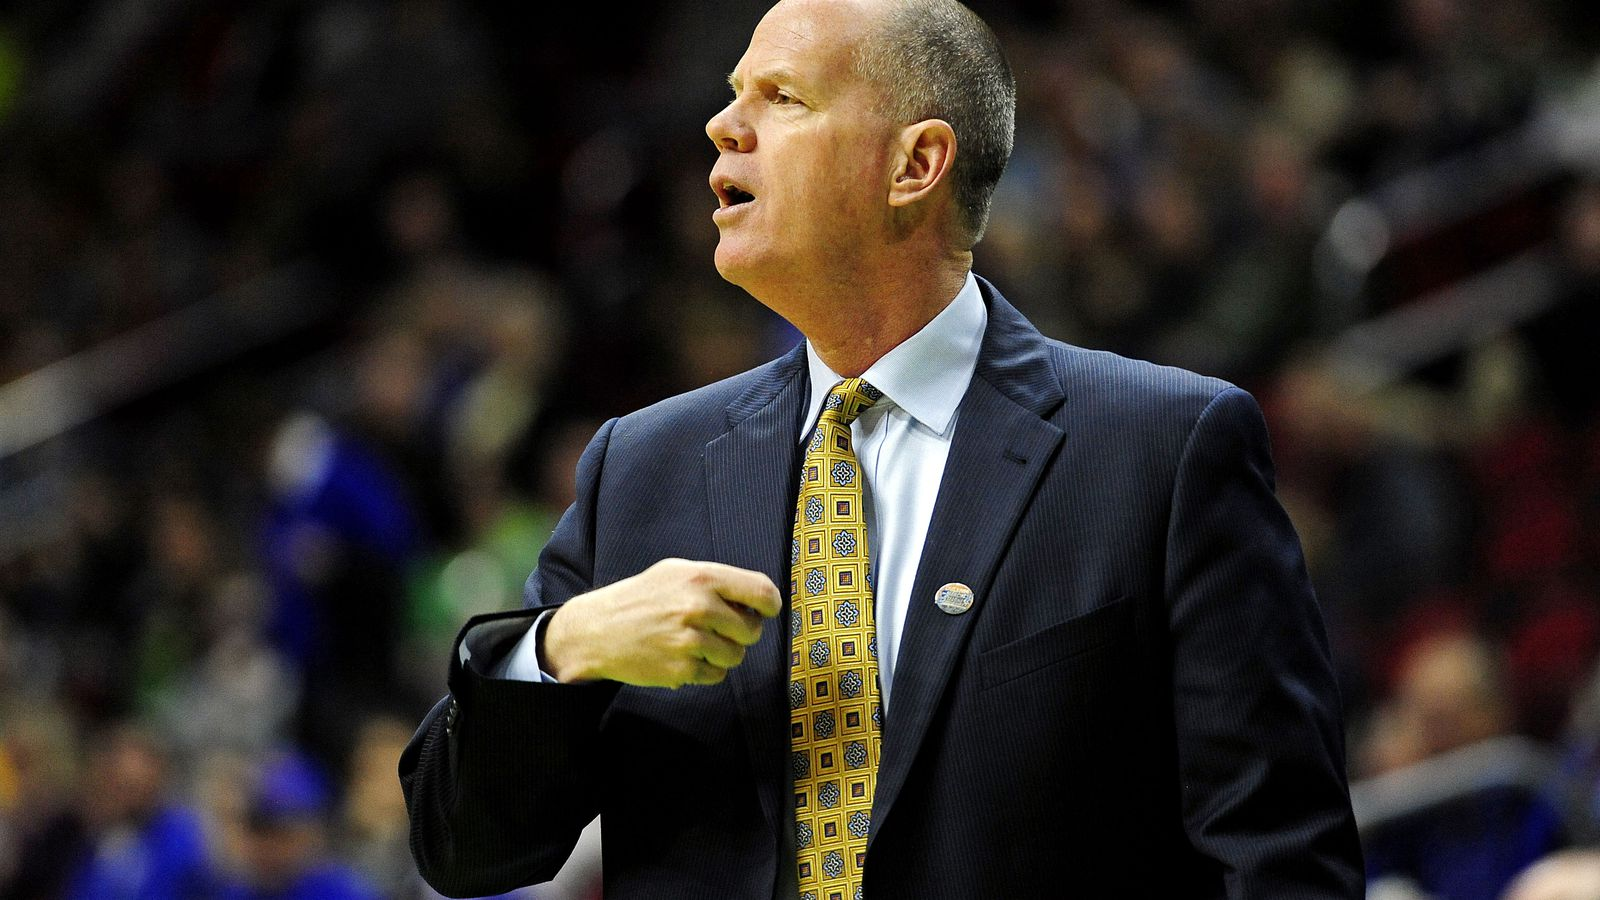 Buffaloes rebound, roll past ULM 89-70 - The Ralphie Report